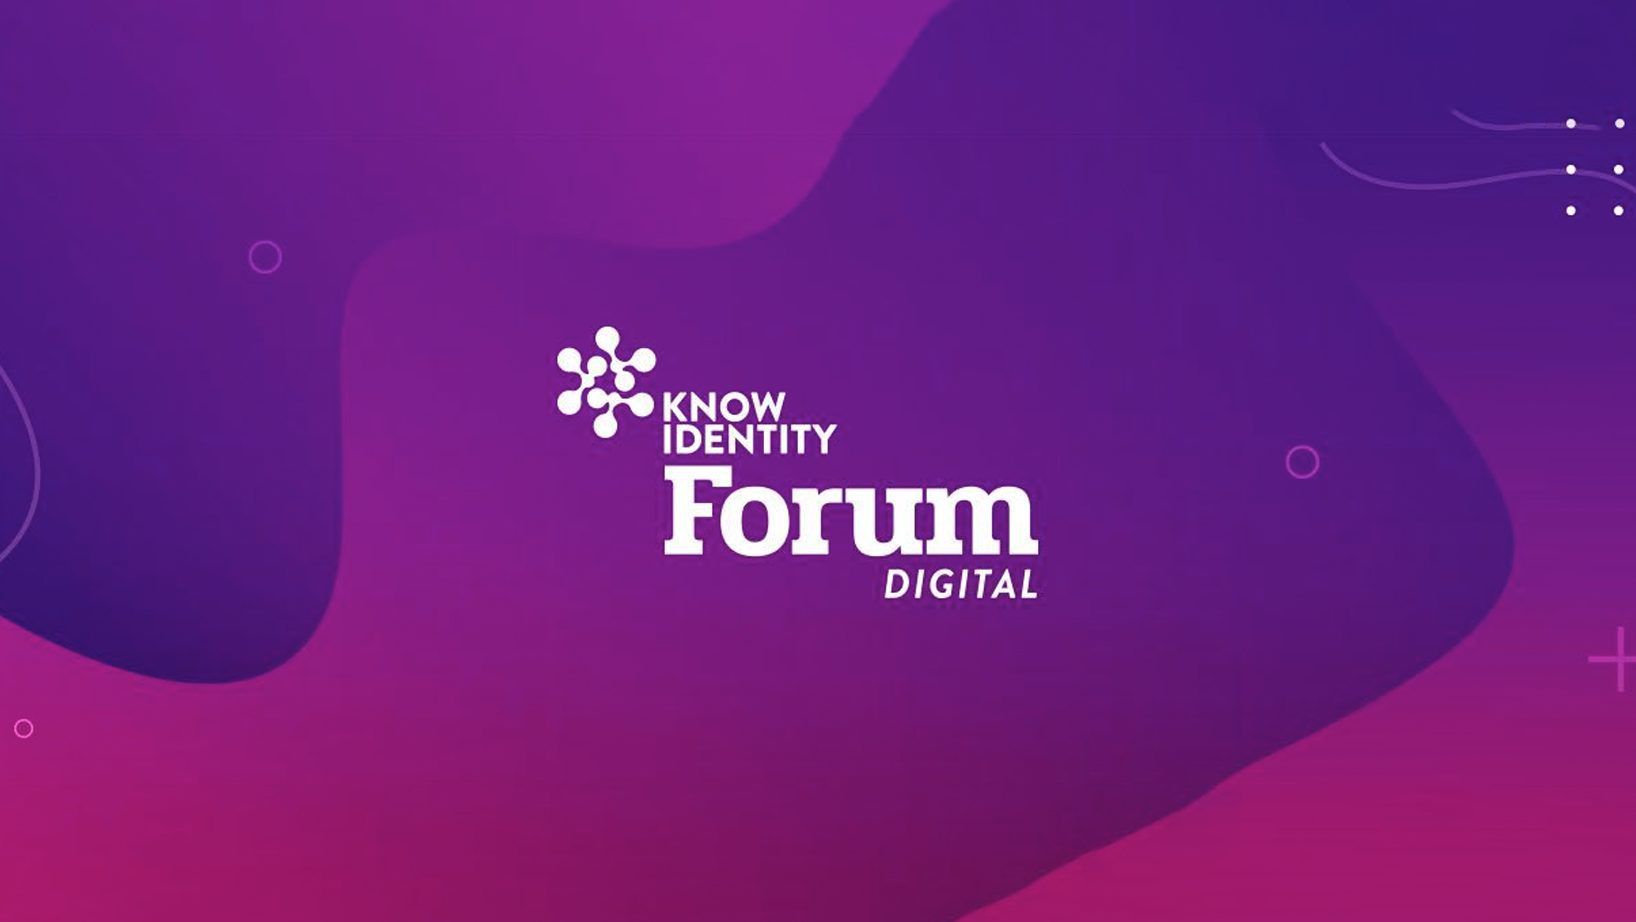 KNOW Identity Fall Fintech Digital Forum